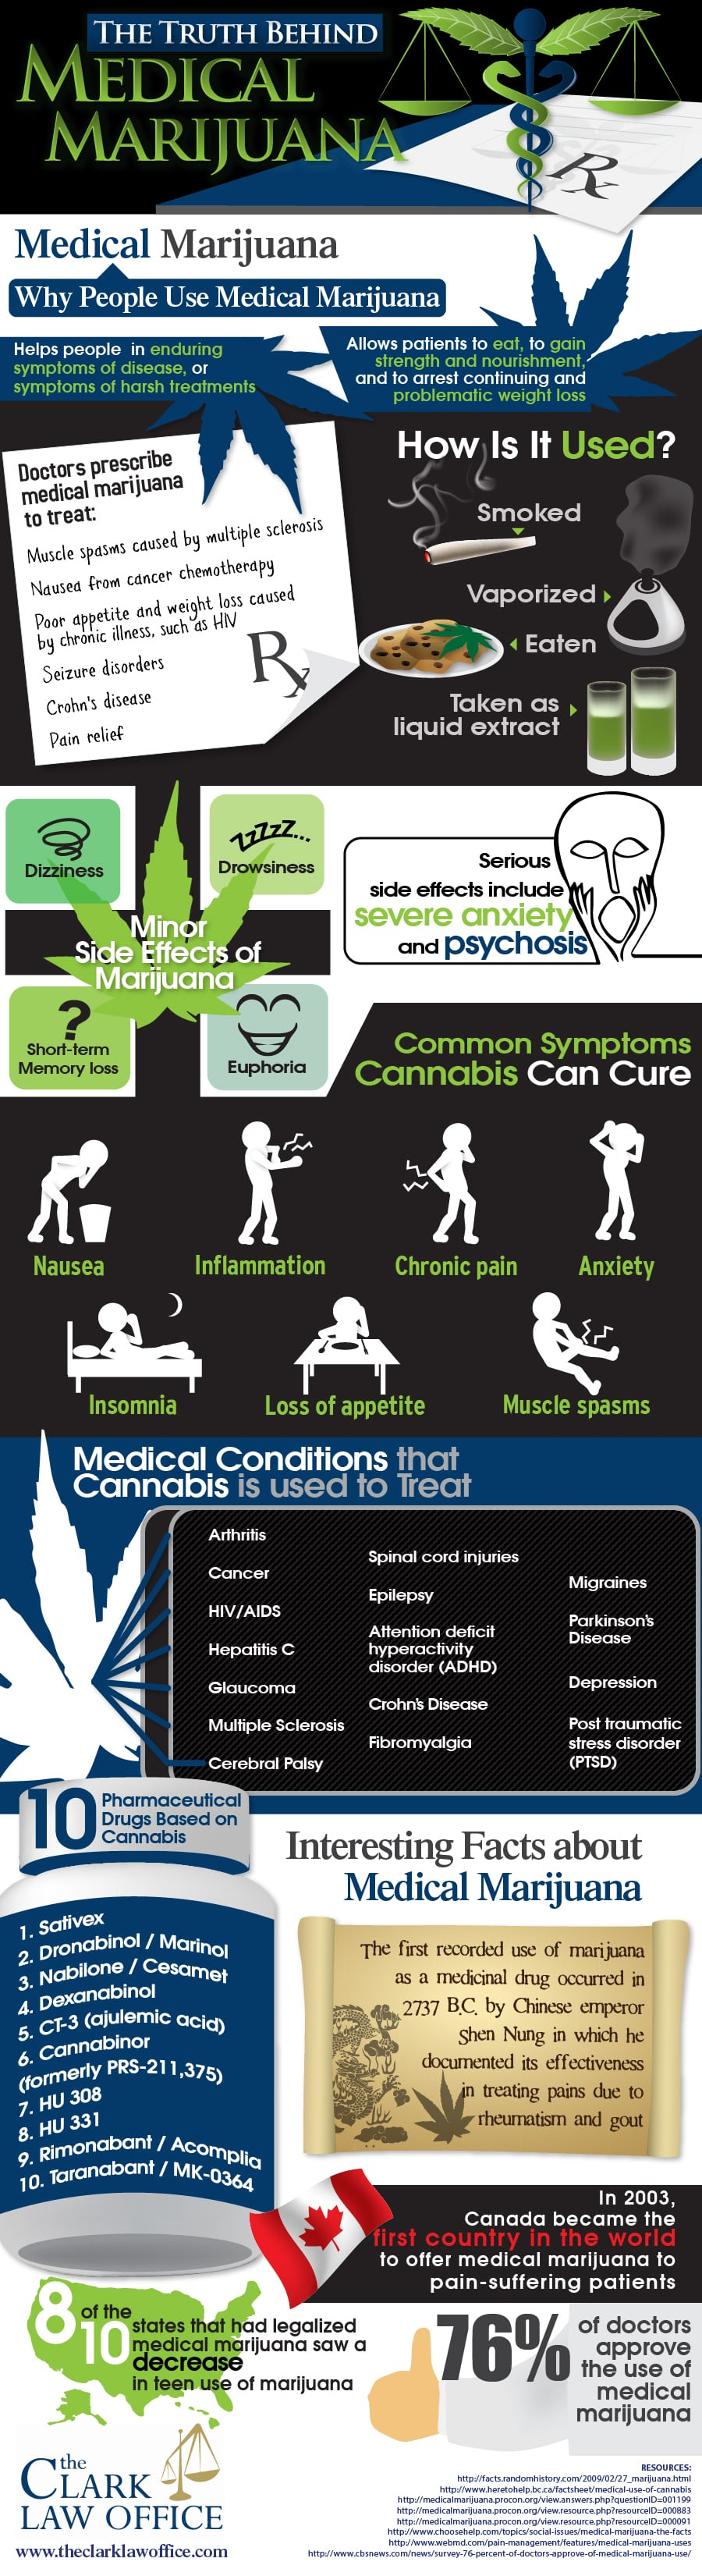 medical-marijuana-infographic